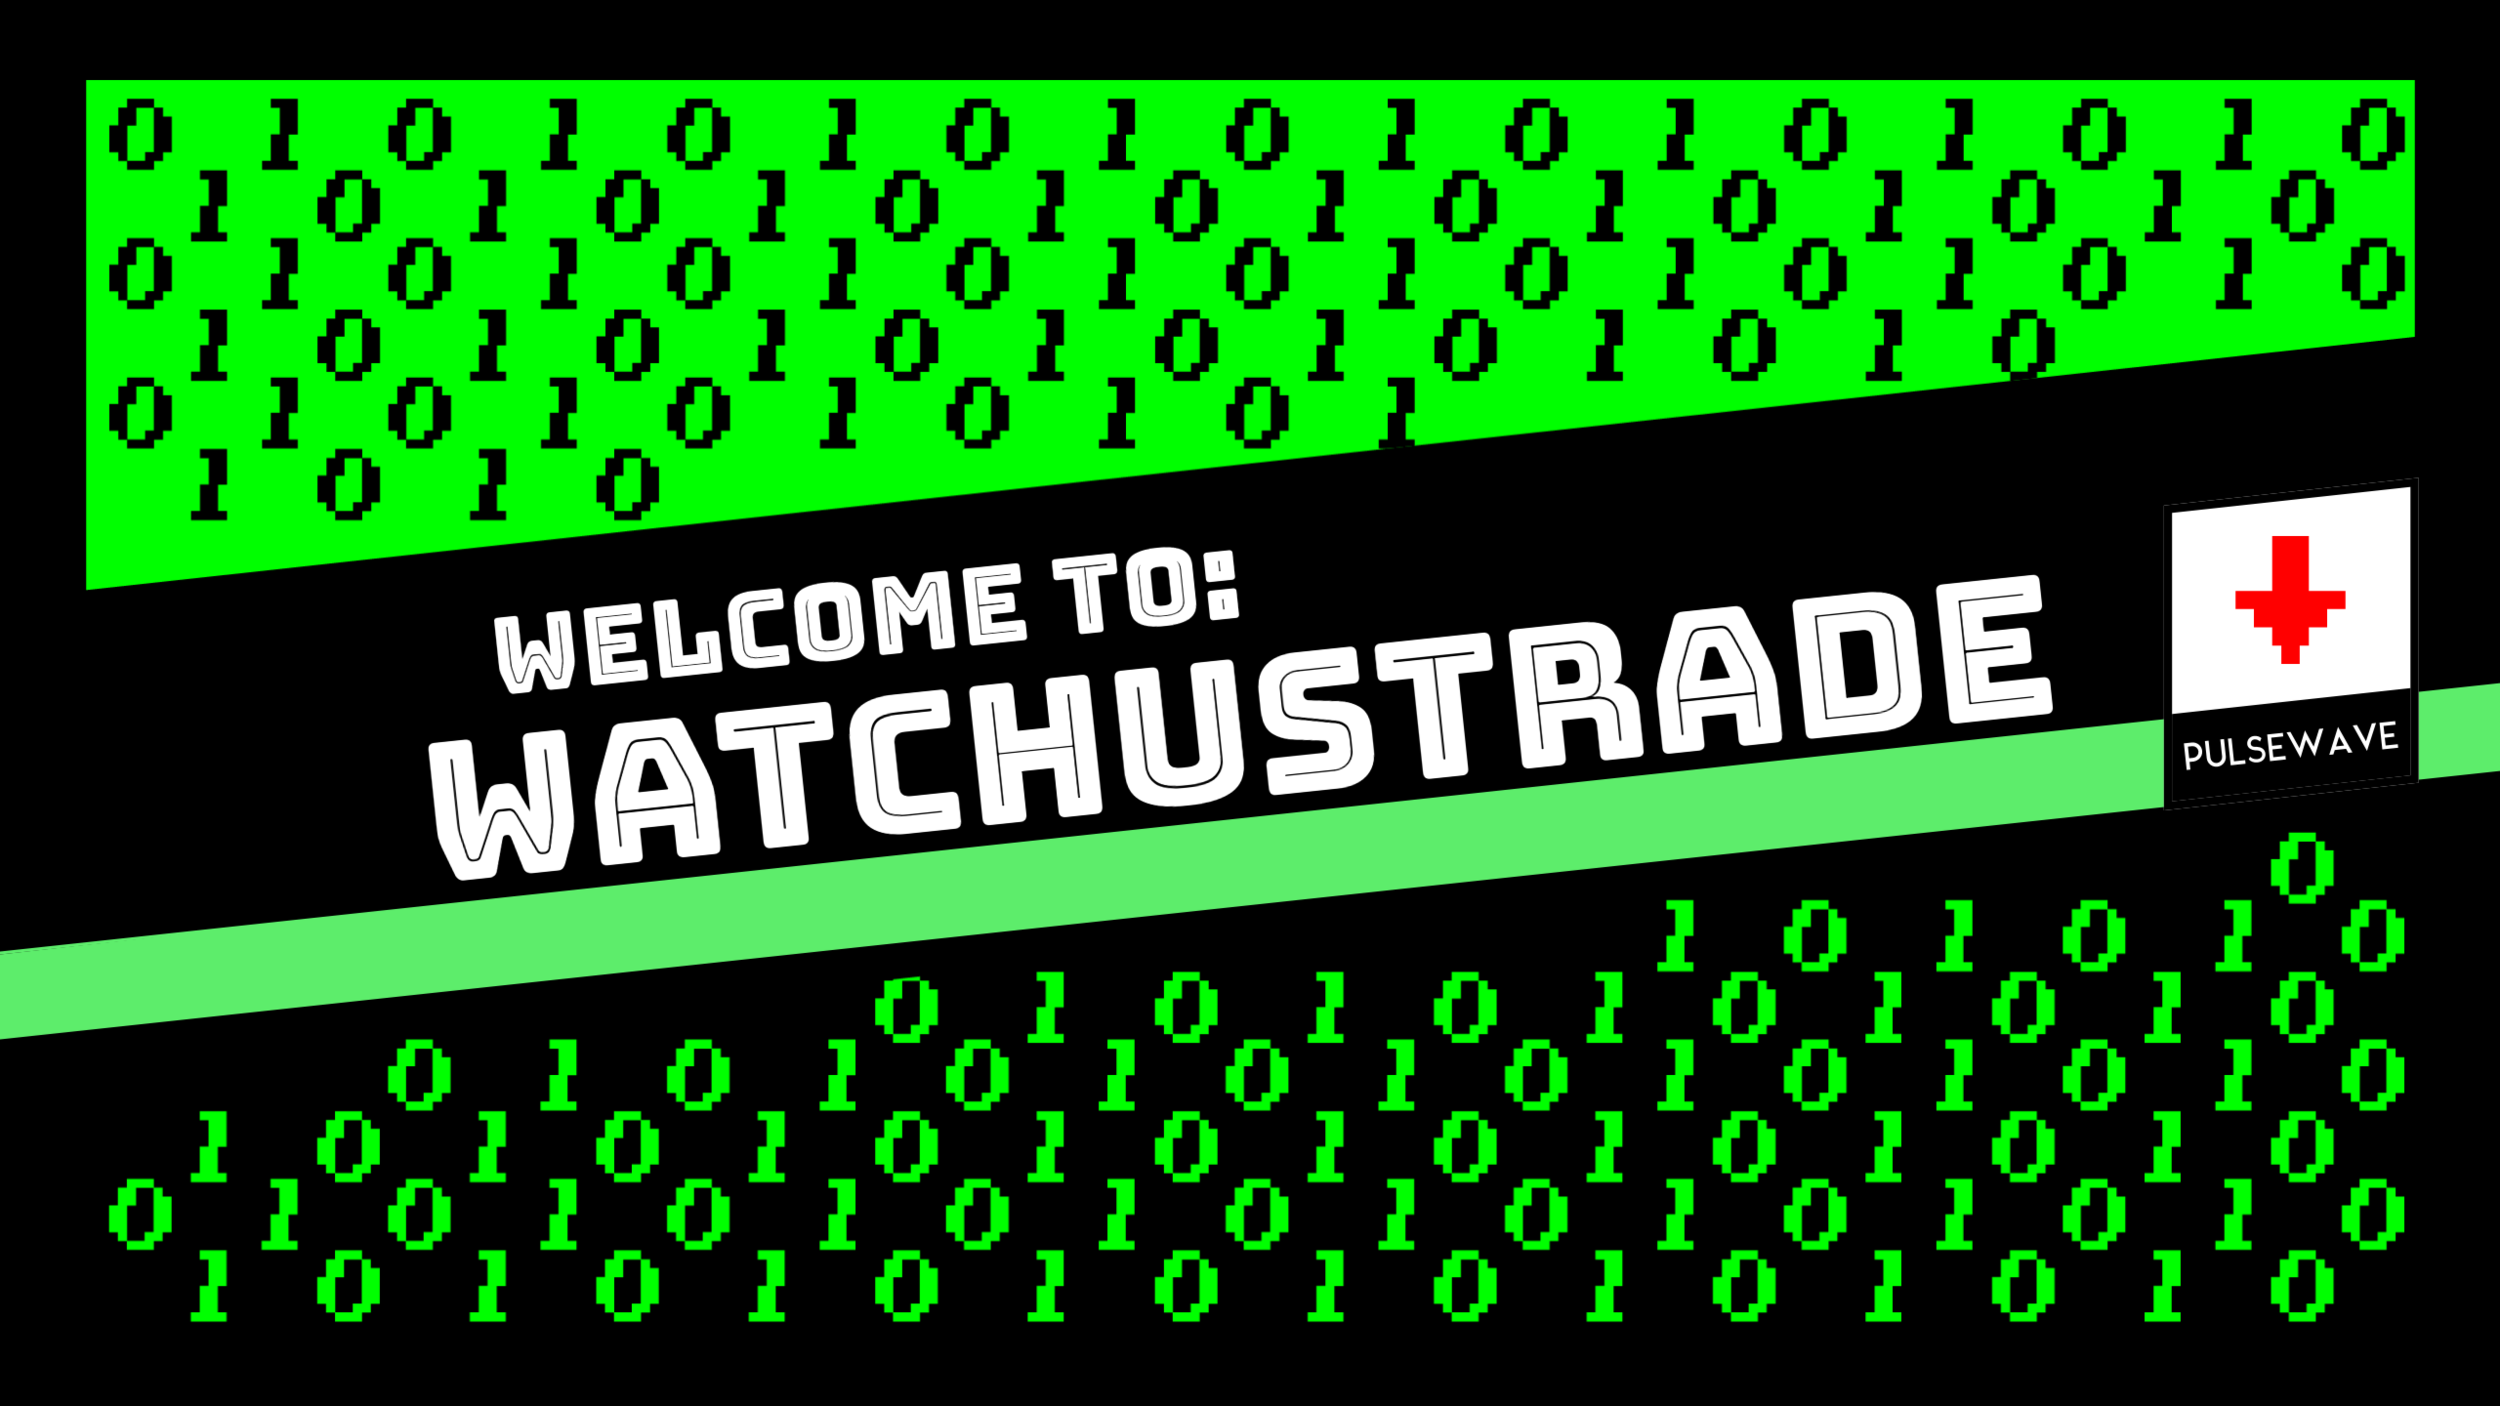 Welcome to WatchUsTrade w- DEX!.png